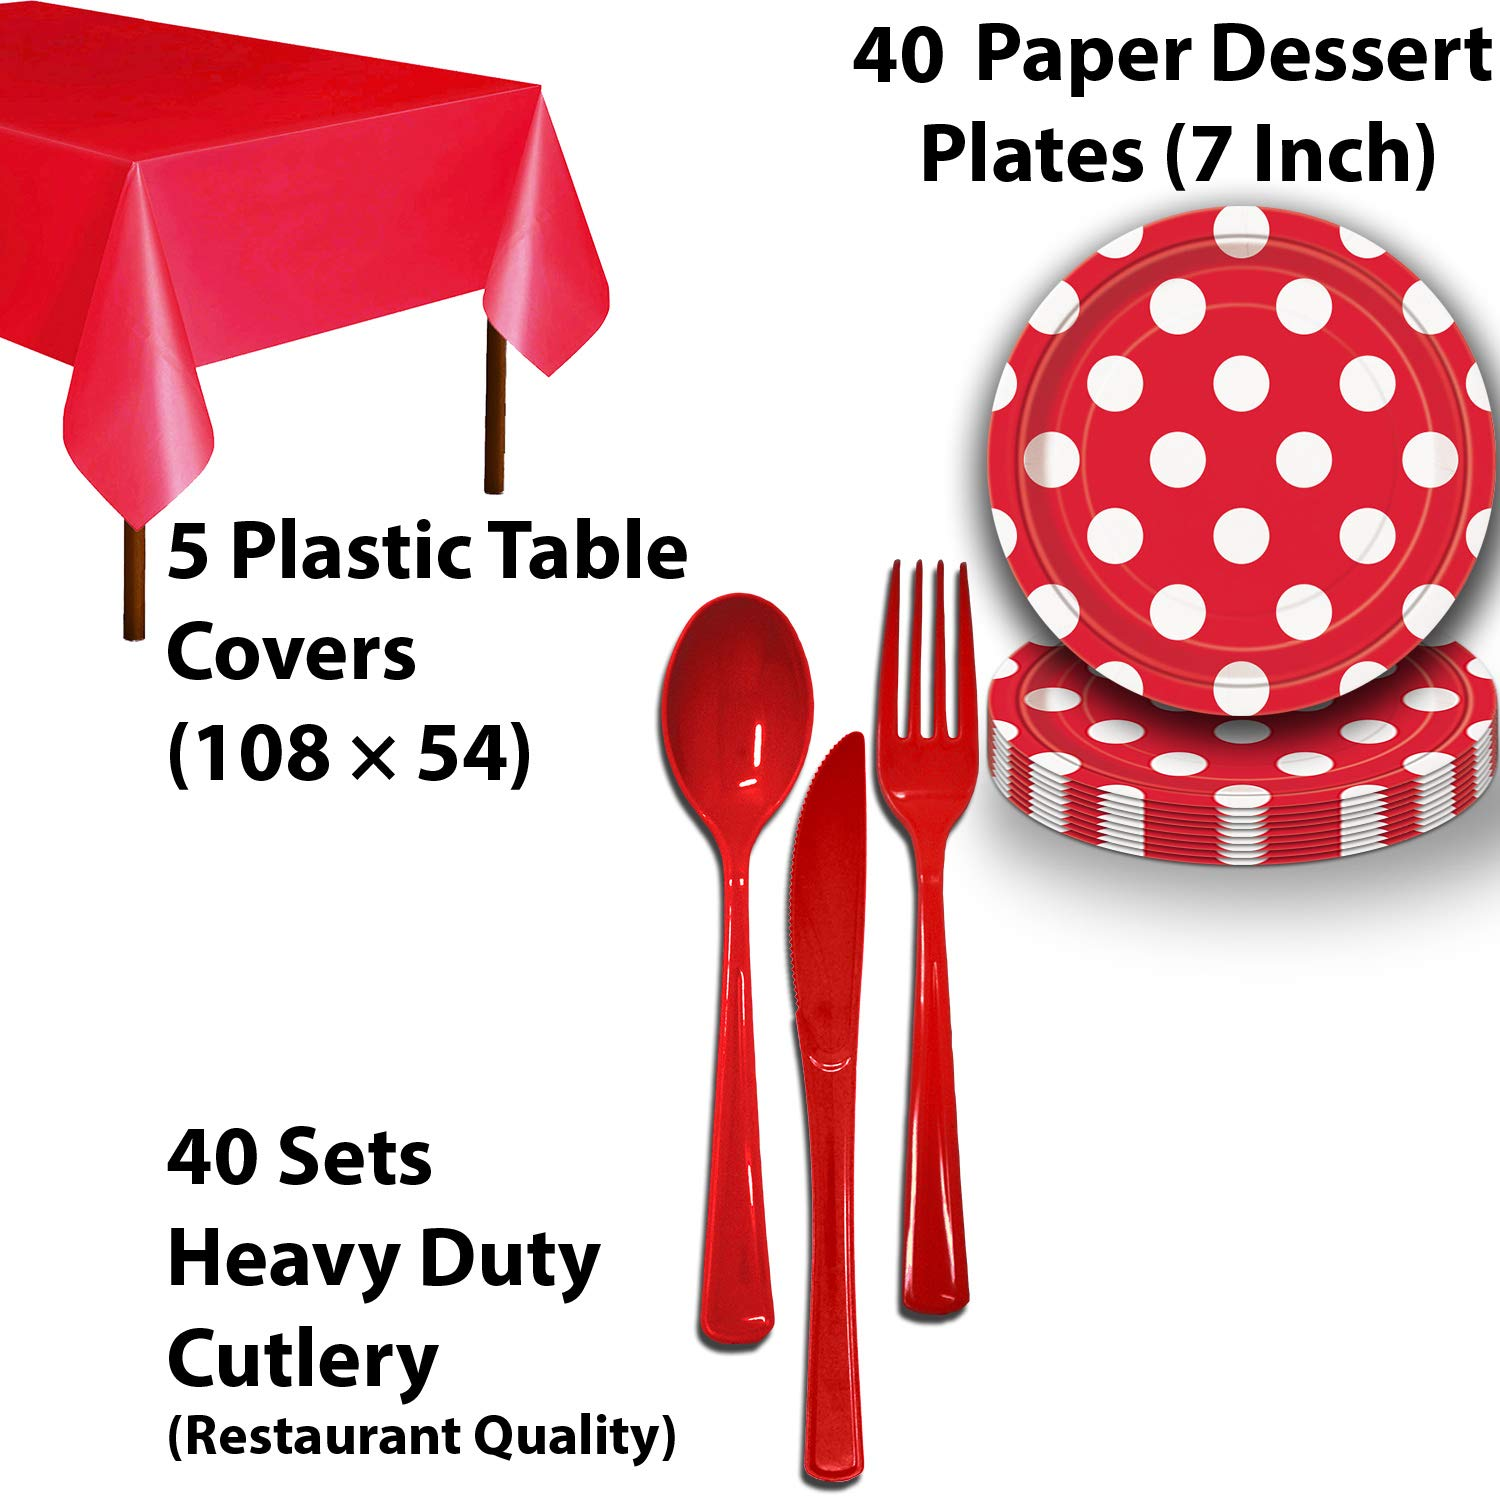 Disposable Tableware, 40 Sets - Midnight Black and Ruby Red - Striped Dinner Plates, Dotted Dessert Plates, Cups, Lunch Napkins, Cutlery, and Tablecloths: Premium Quality Party Supplies Set by HeroFiber (Image #4)